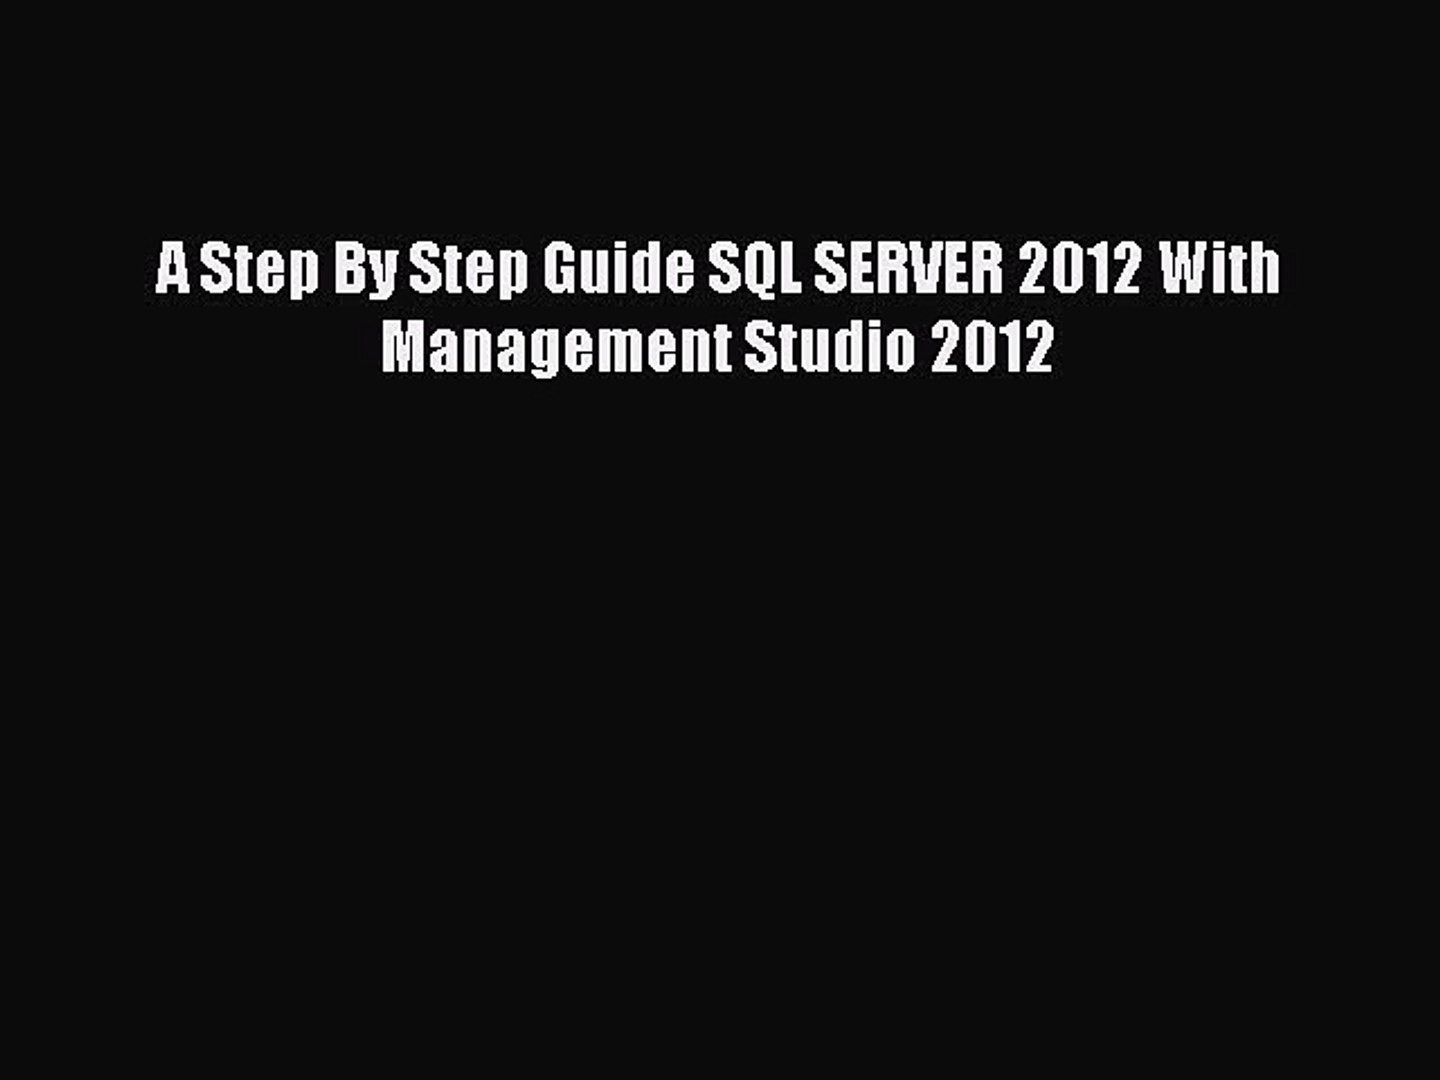 Download A Step By Step Guide SQL SERVER 2012 With Management Studio 2012  Ebook Online